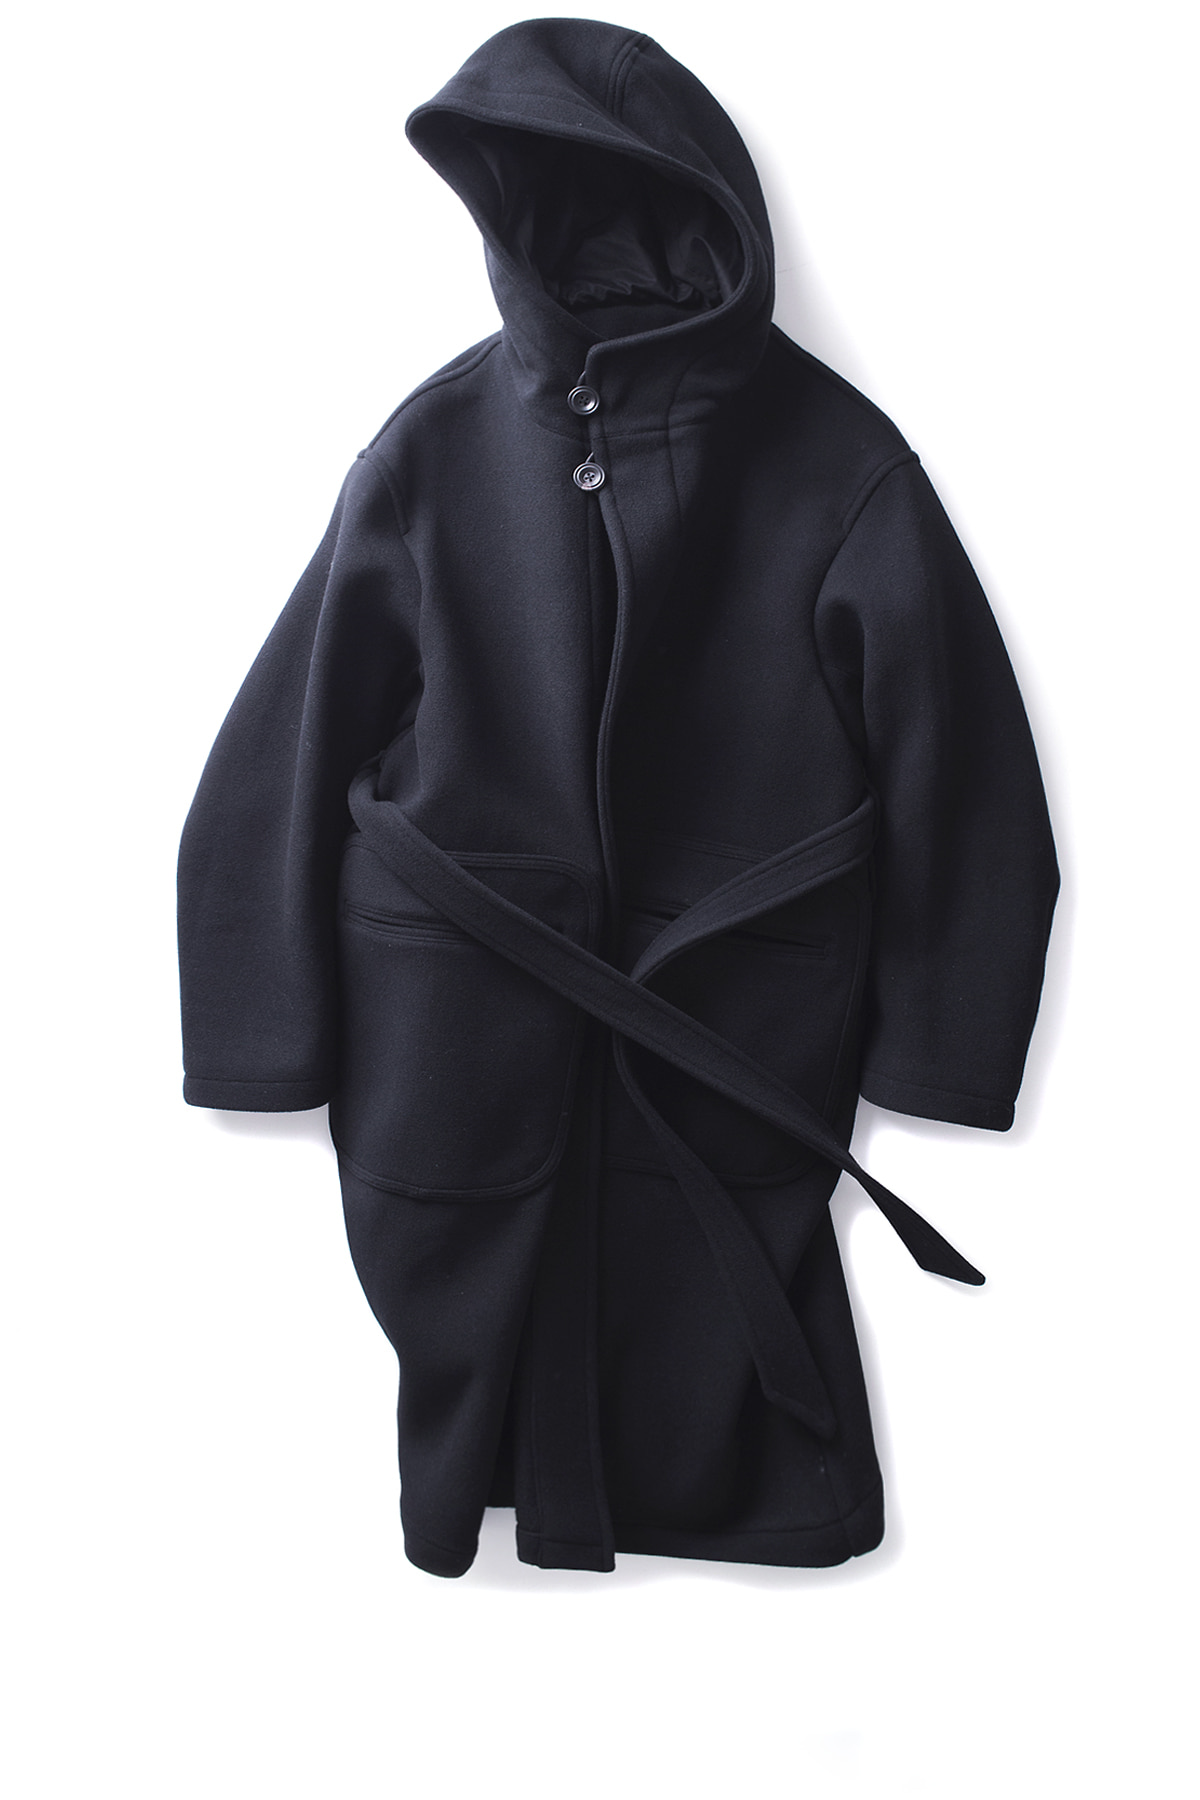 UNAFFECTED : Hooded Robe Coat (Black Wool)